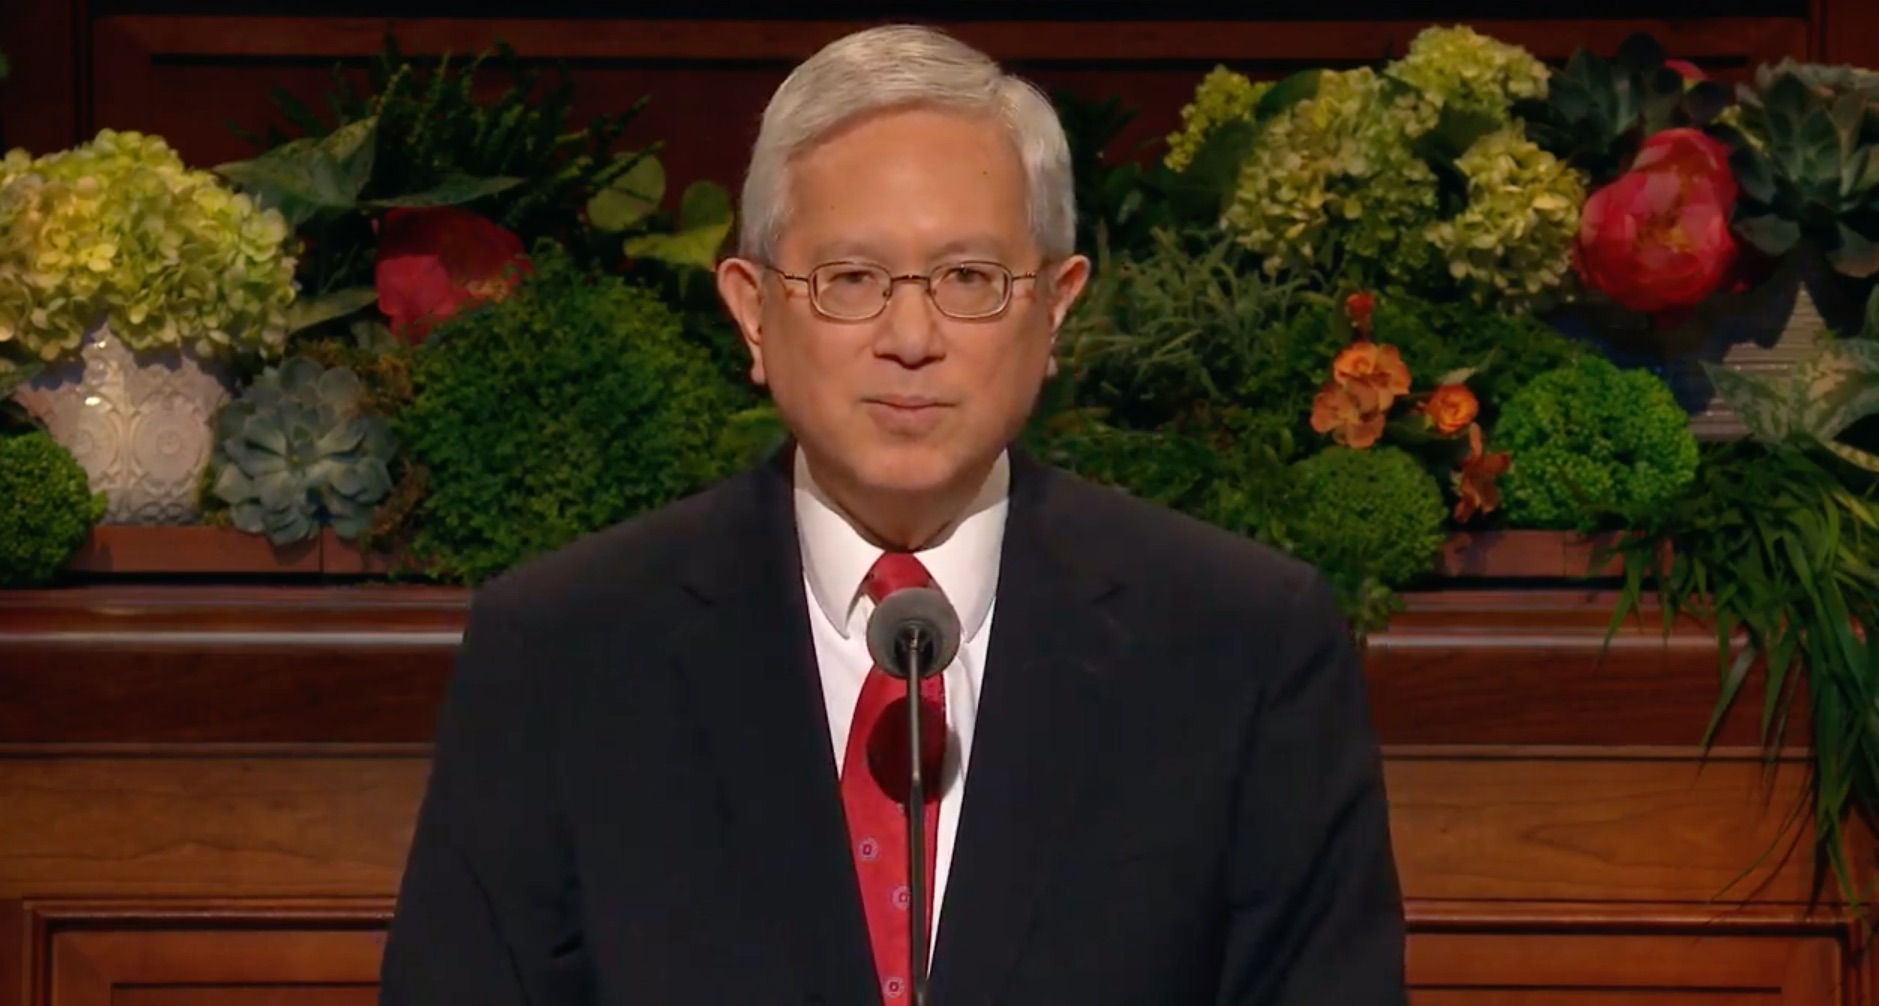 Elder Gerrit W. Gong of the Quorum of the Twelve Apostles gives his address during the Sunday afternoon session of the 189th Annual General Conference on April 7, 2019.